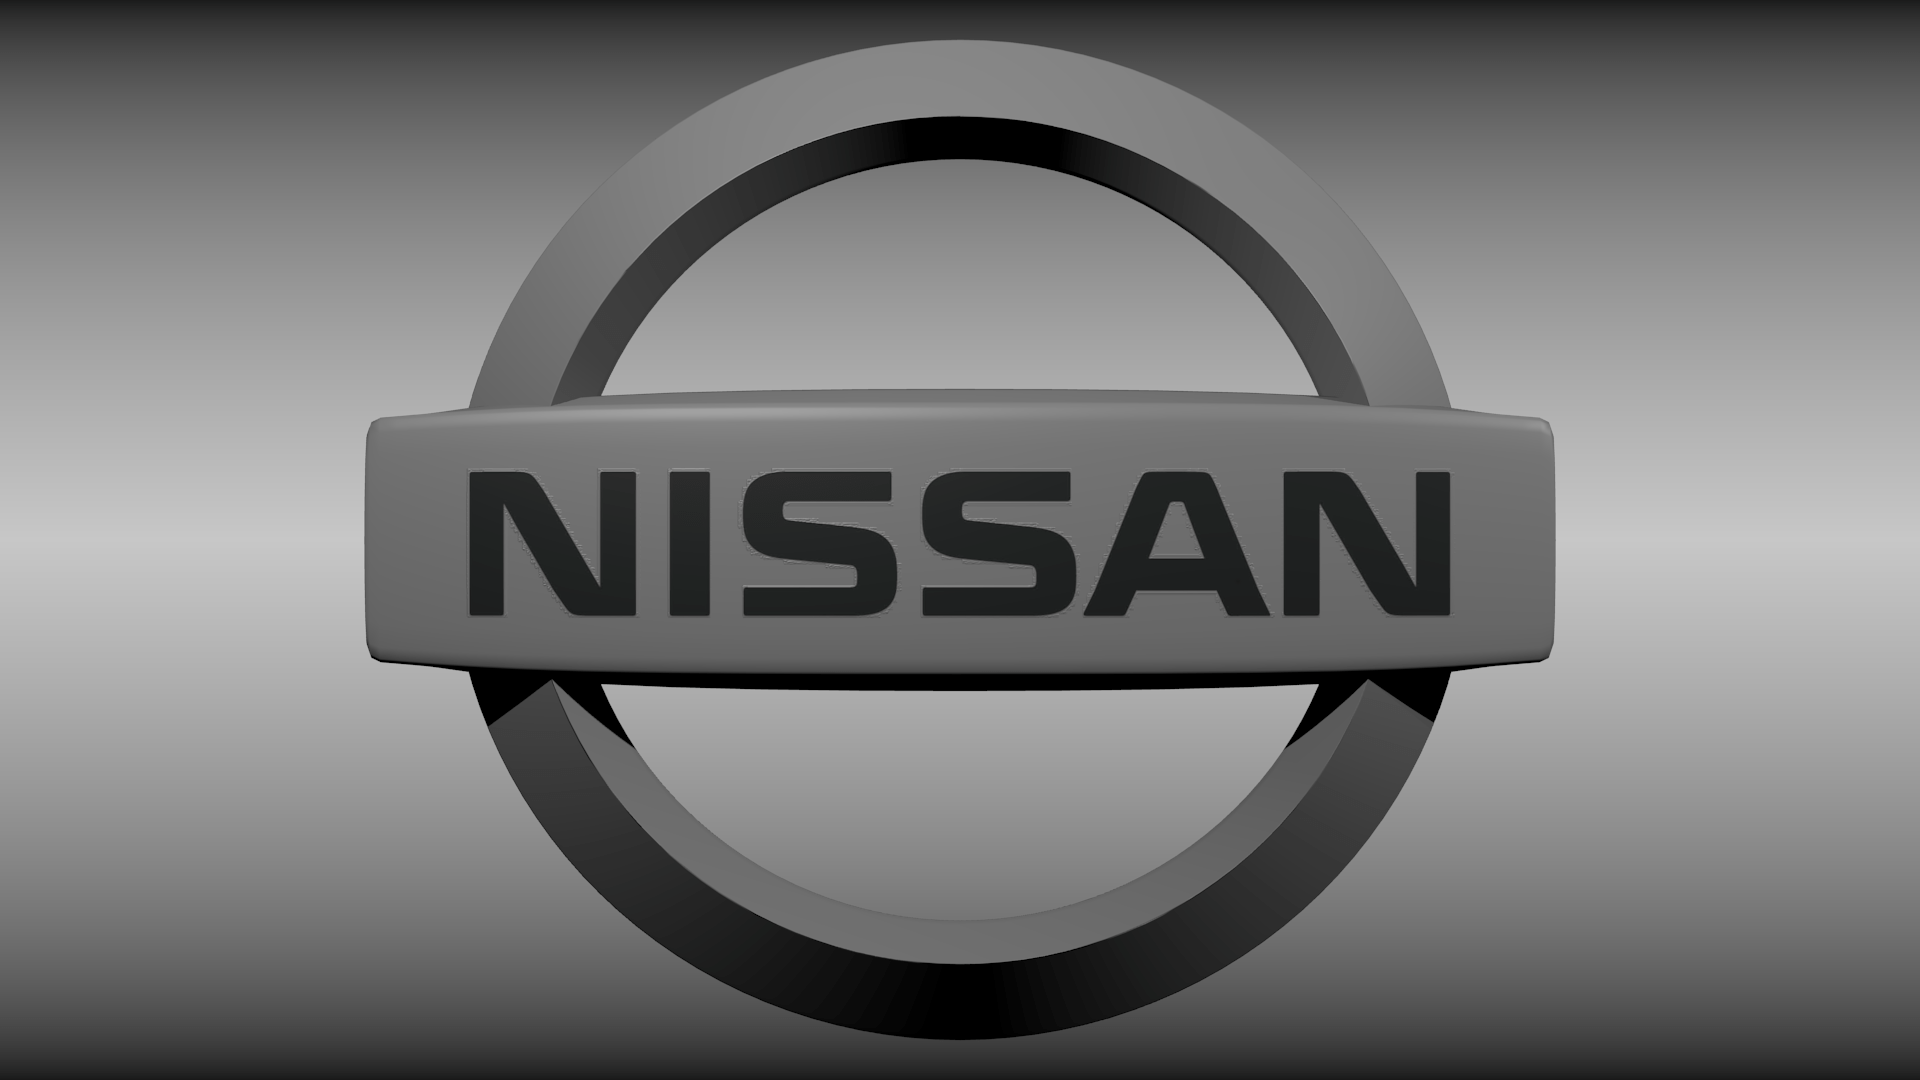 Vintage Car Design Wallpaper 5 Hd Nissan Logo Wallpapers